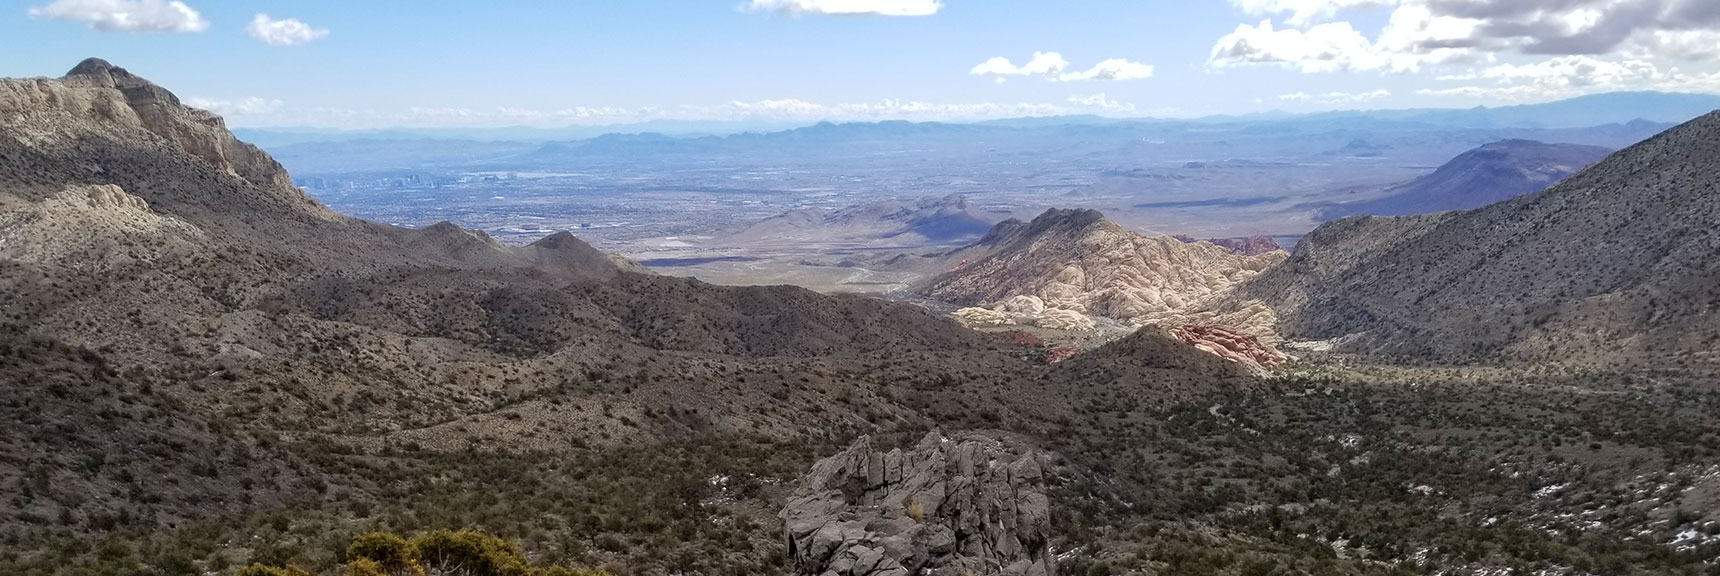 View of Calico Basin and Las Vegas from the base of La Madre Mountain